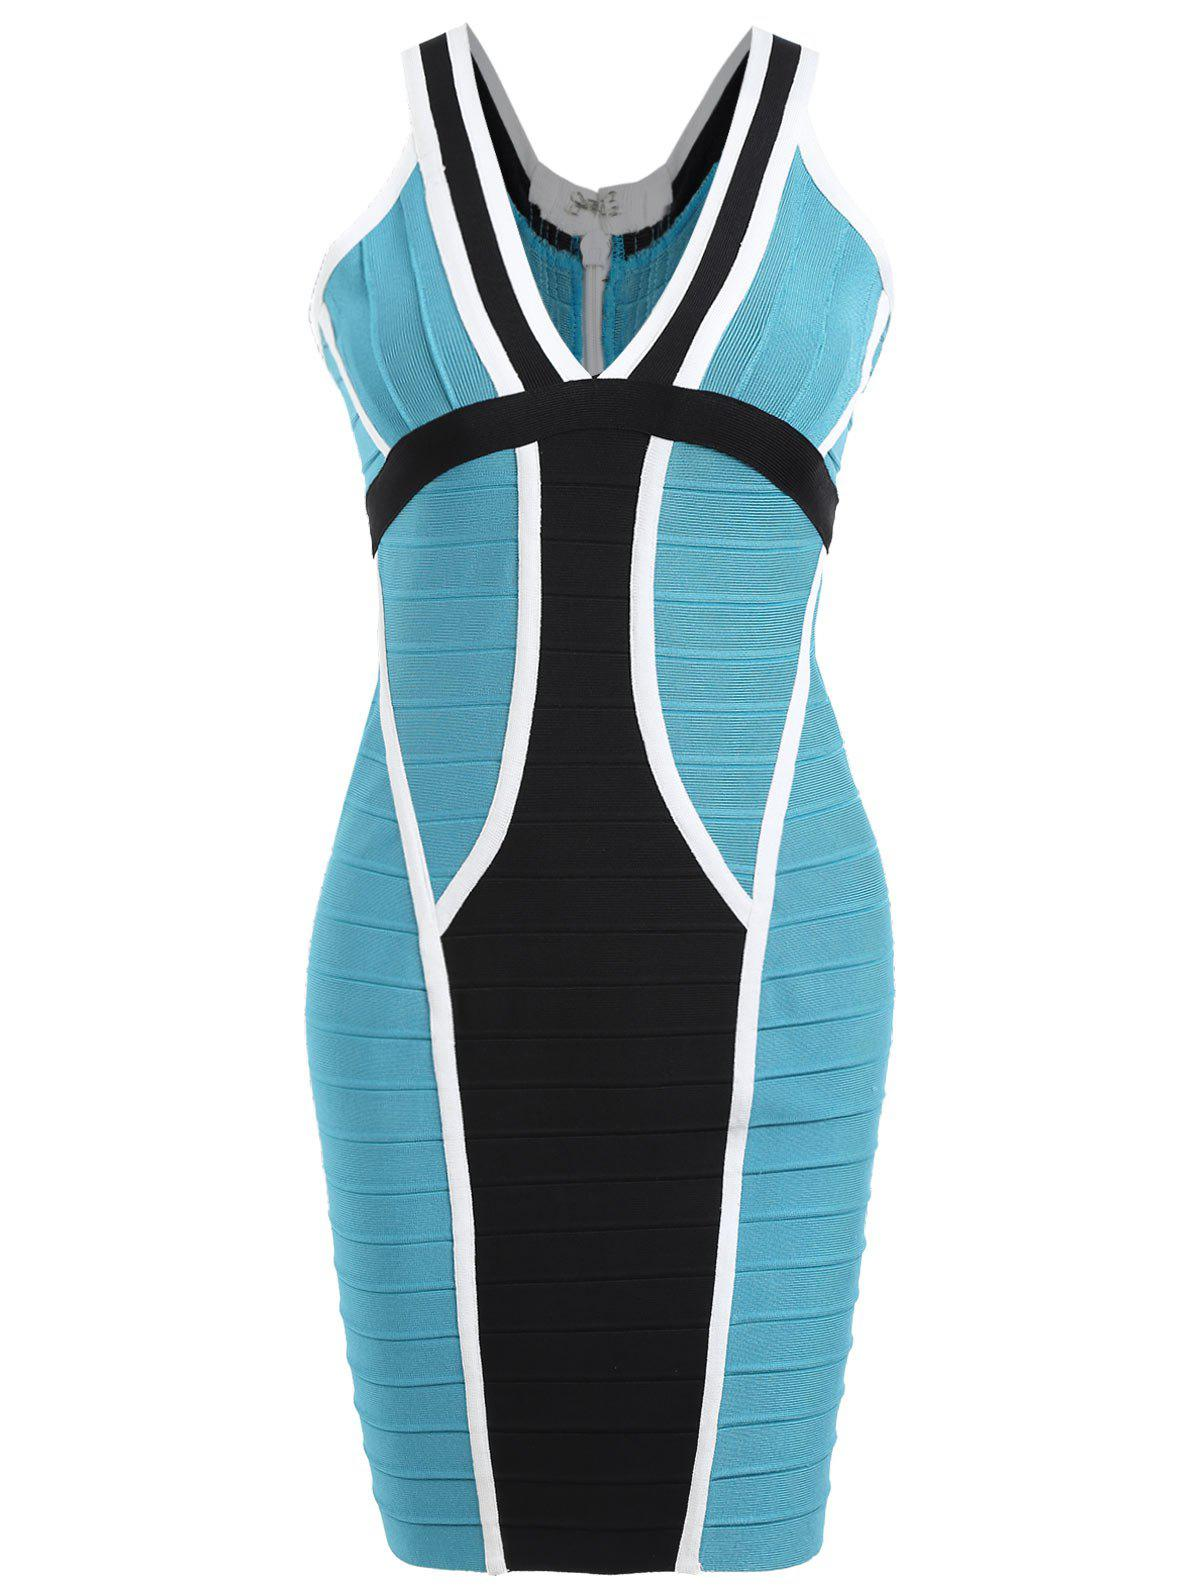 V Neck Color Block Bandage Dress - BLUE L